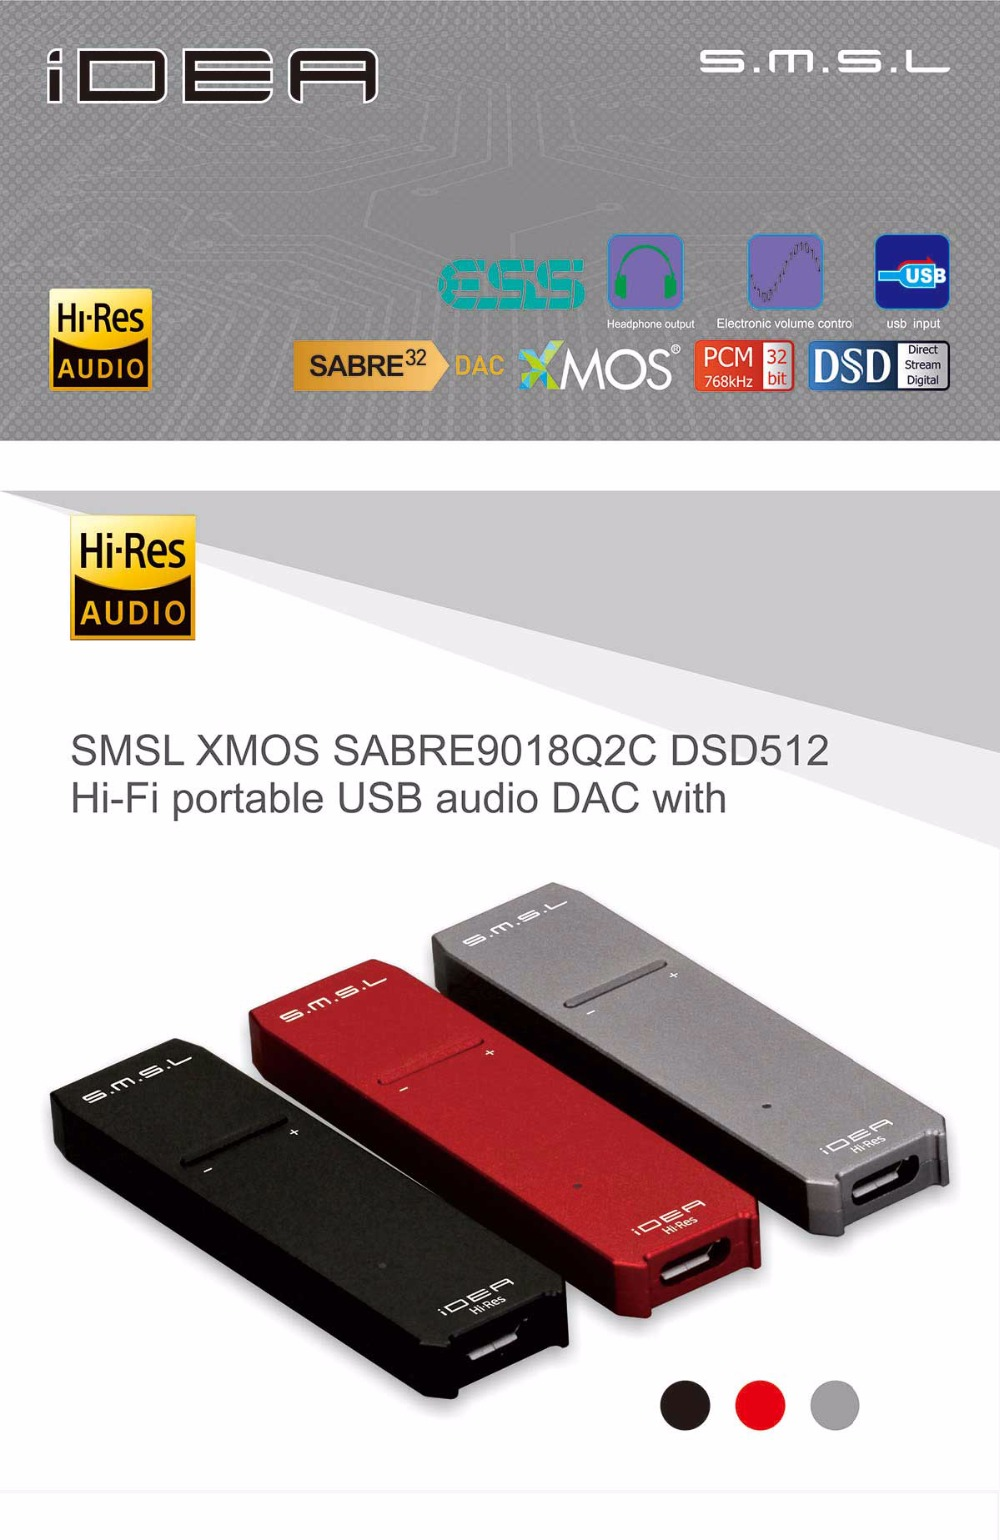 SMSL IDEA Portable Headphone Amplifier XMOS DAC DSD512 HIFI EXQUIS S.M.S.L. Nomade mini Decoder AMP USB 2017 newest smsl icon hifi audio lighting decoder dac amp 48khz portable headphone amplifier